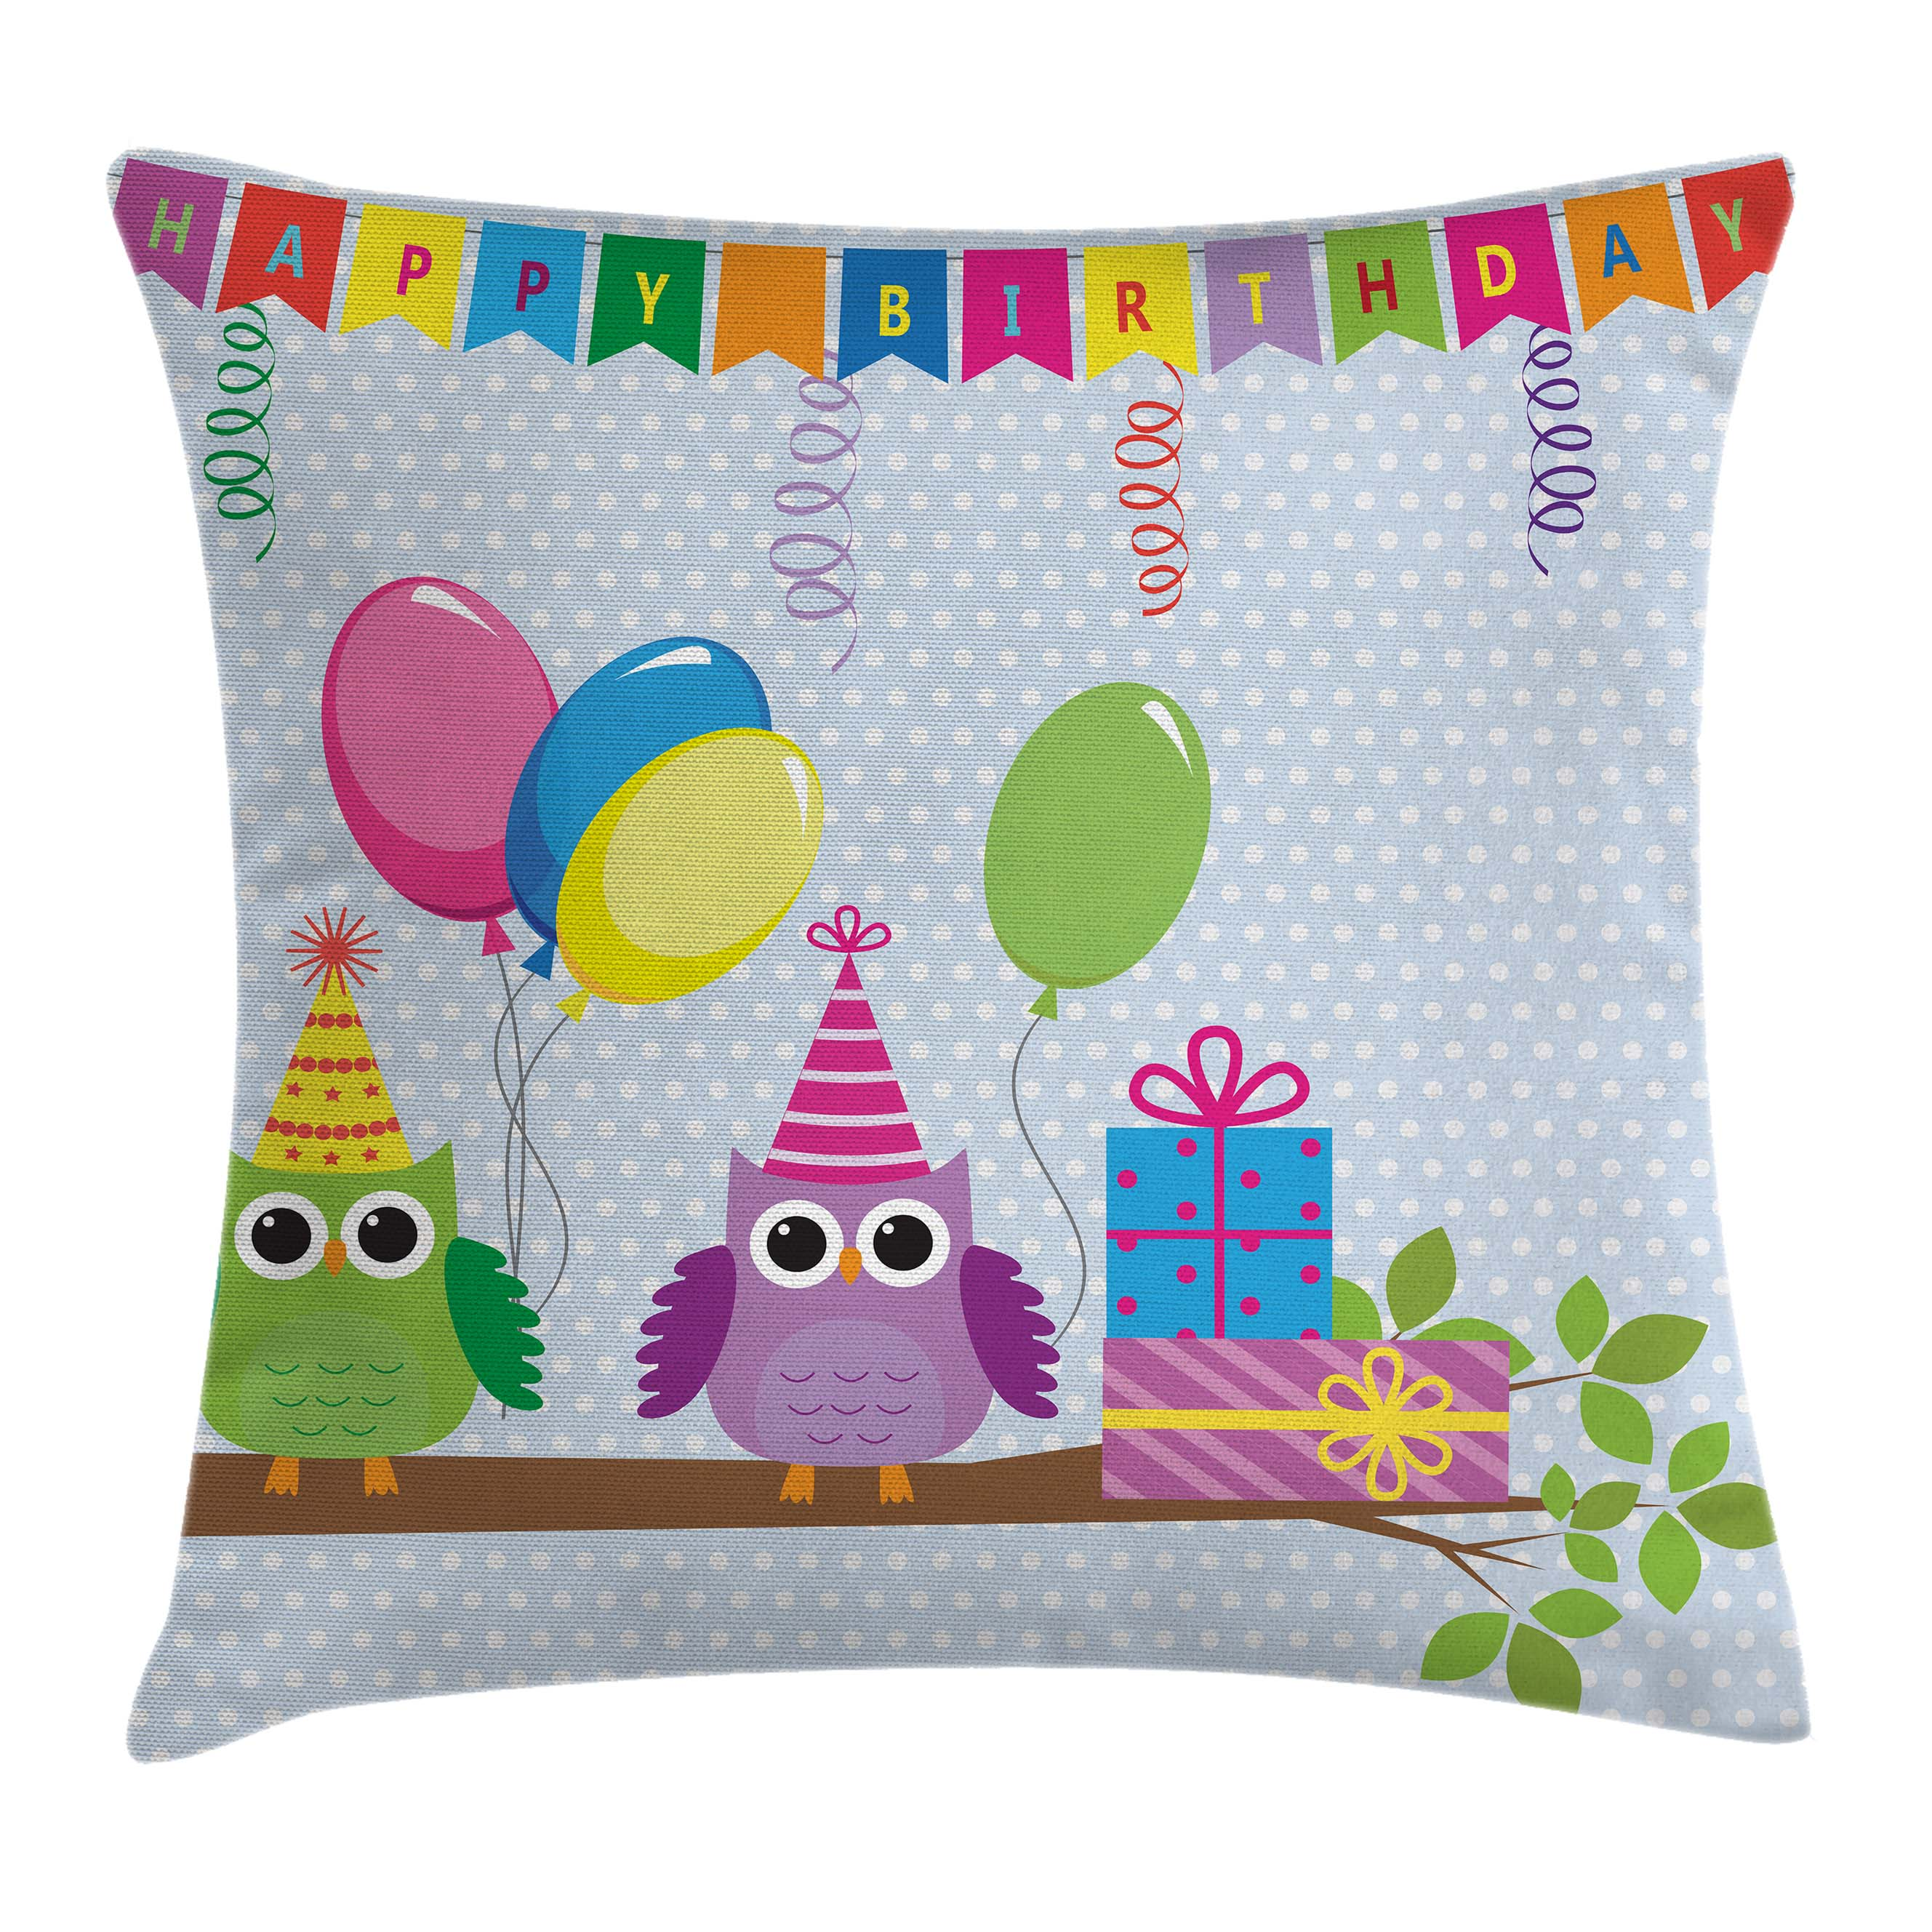 Birthday Decorations for Kids Throw Pillow Cushion Cover, Cartoon Owls at a Party with Flags Boxes Polka Dot Backdrop, Decorative Square Accent Pillow Case, 16 X 16 Inches, Baby Blue, by Ambesonne